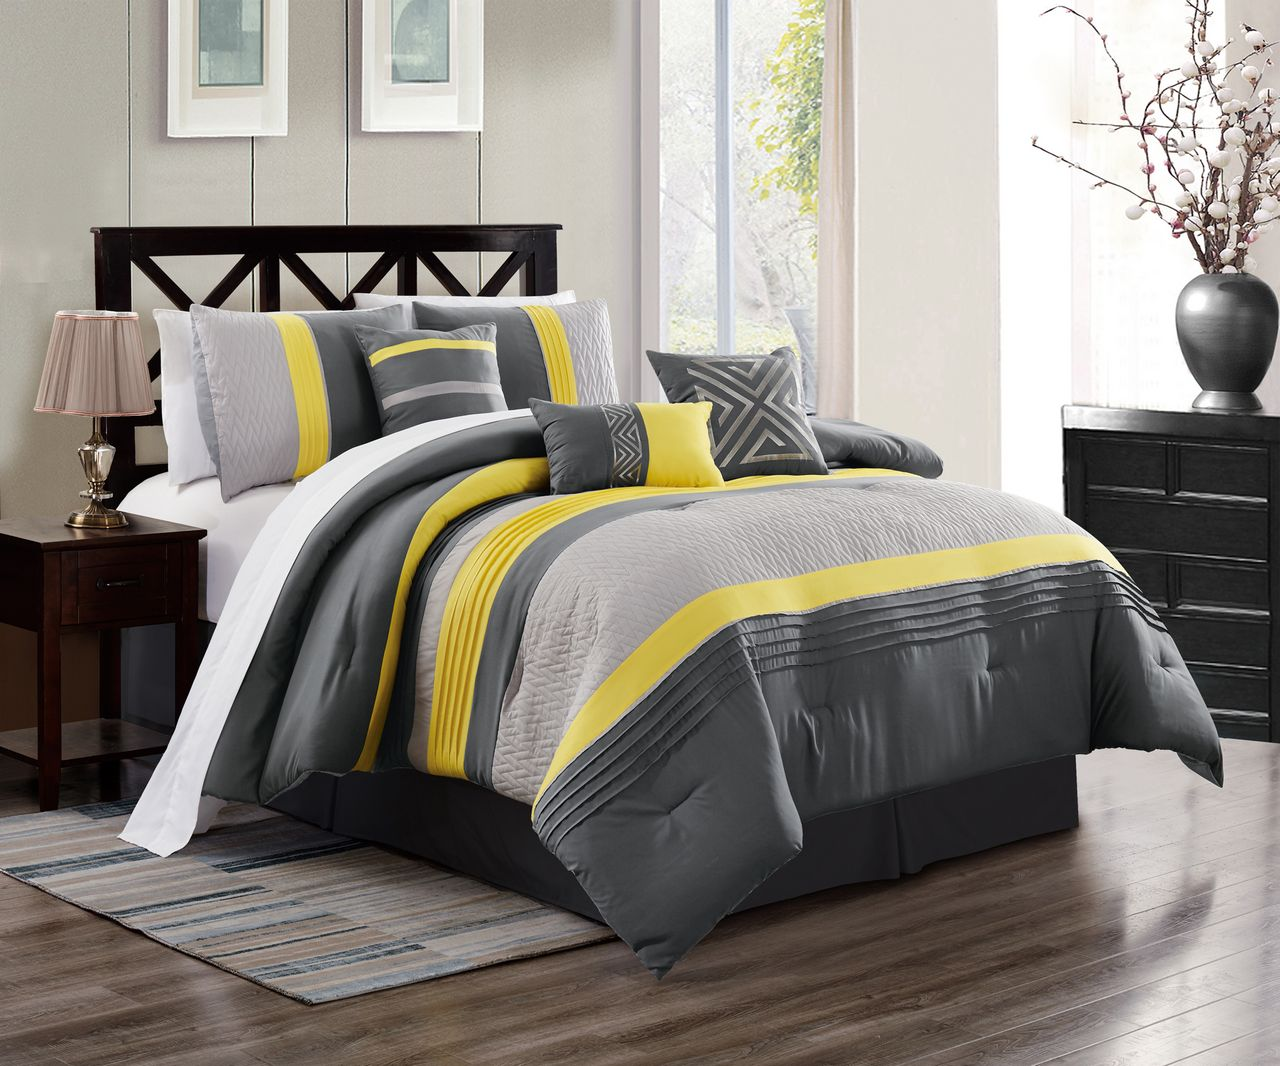 7 Piece Chai Yellow/Gray Comforter Set